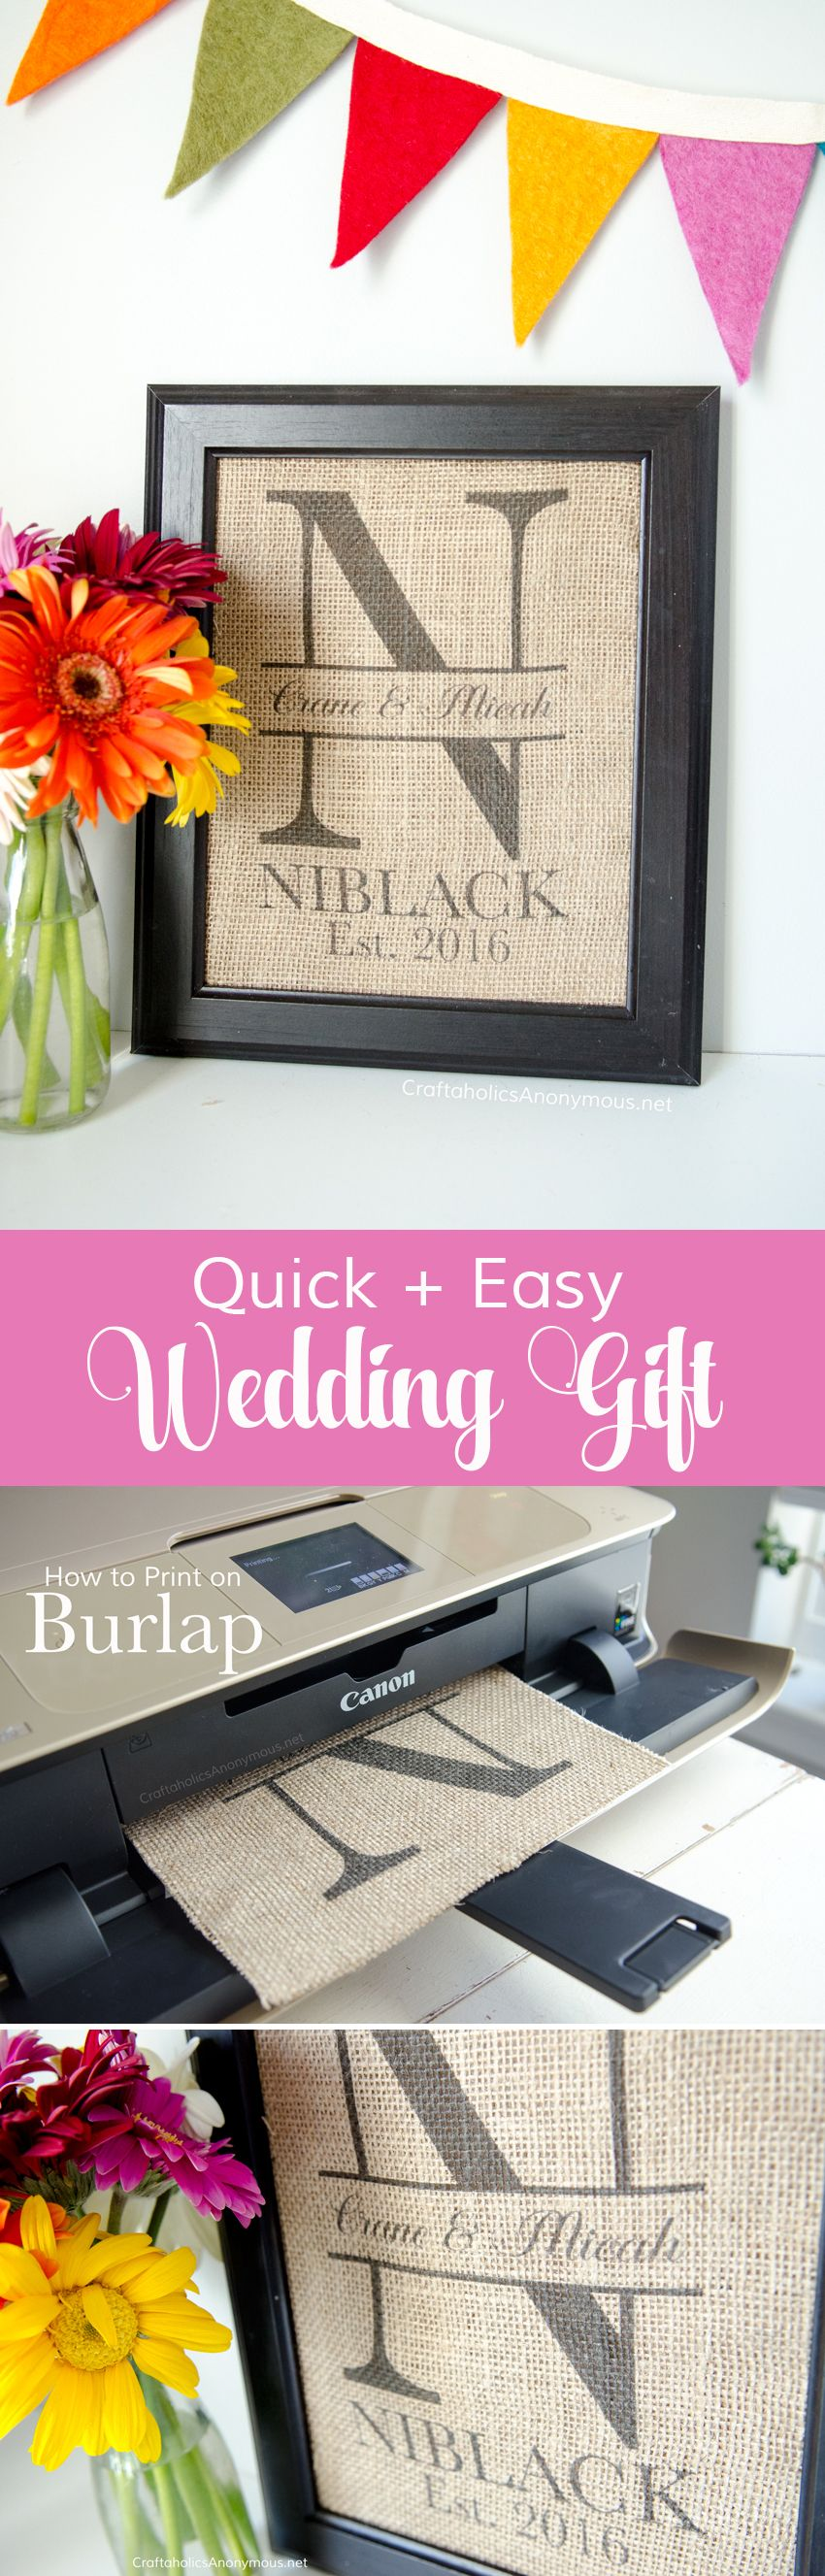 Craftaholics Anonymous Spring Means Wedding Make Beautiful Art For The Bride And Groom To Be With This Easy Tutorial